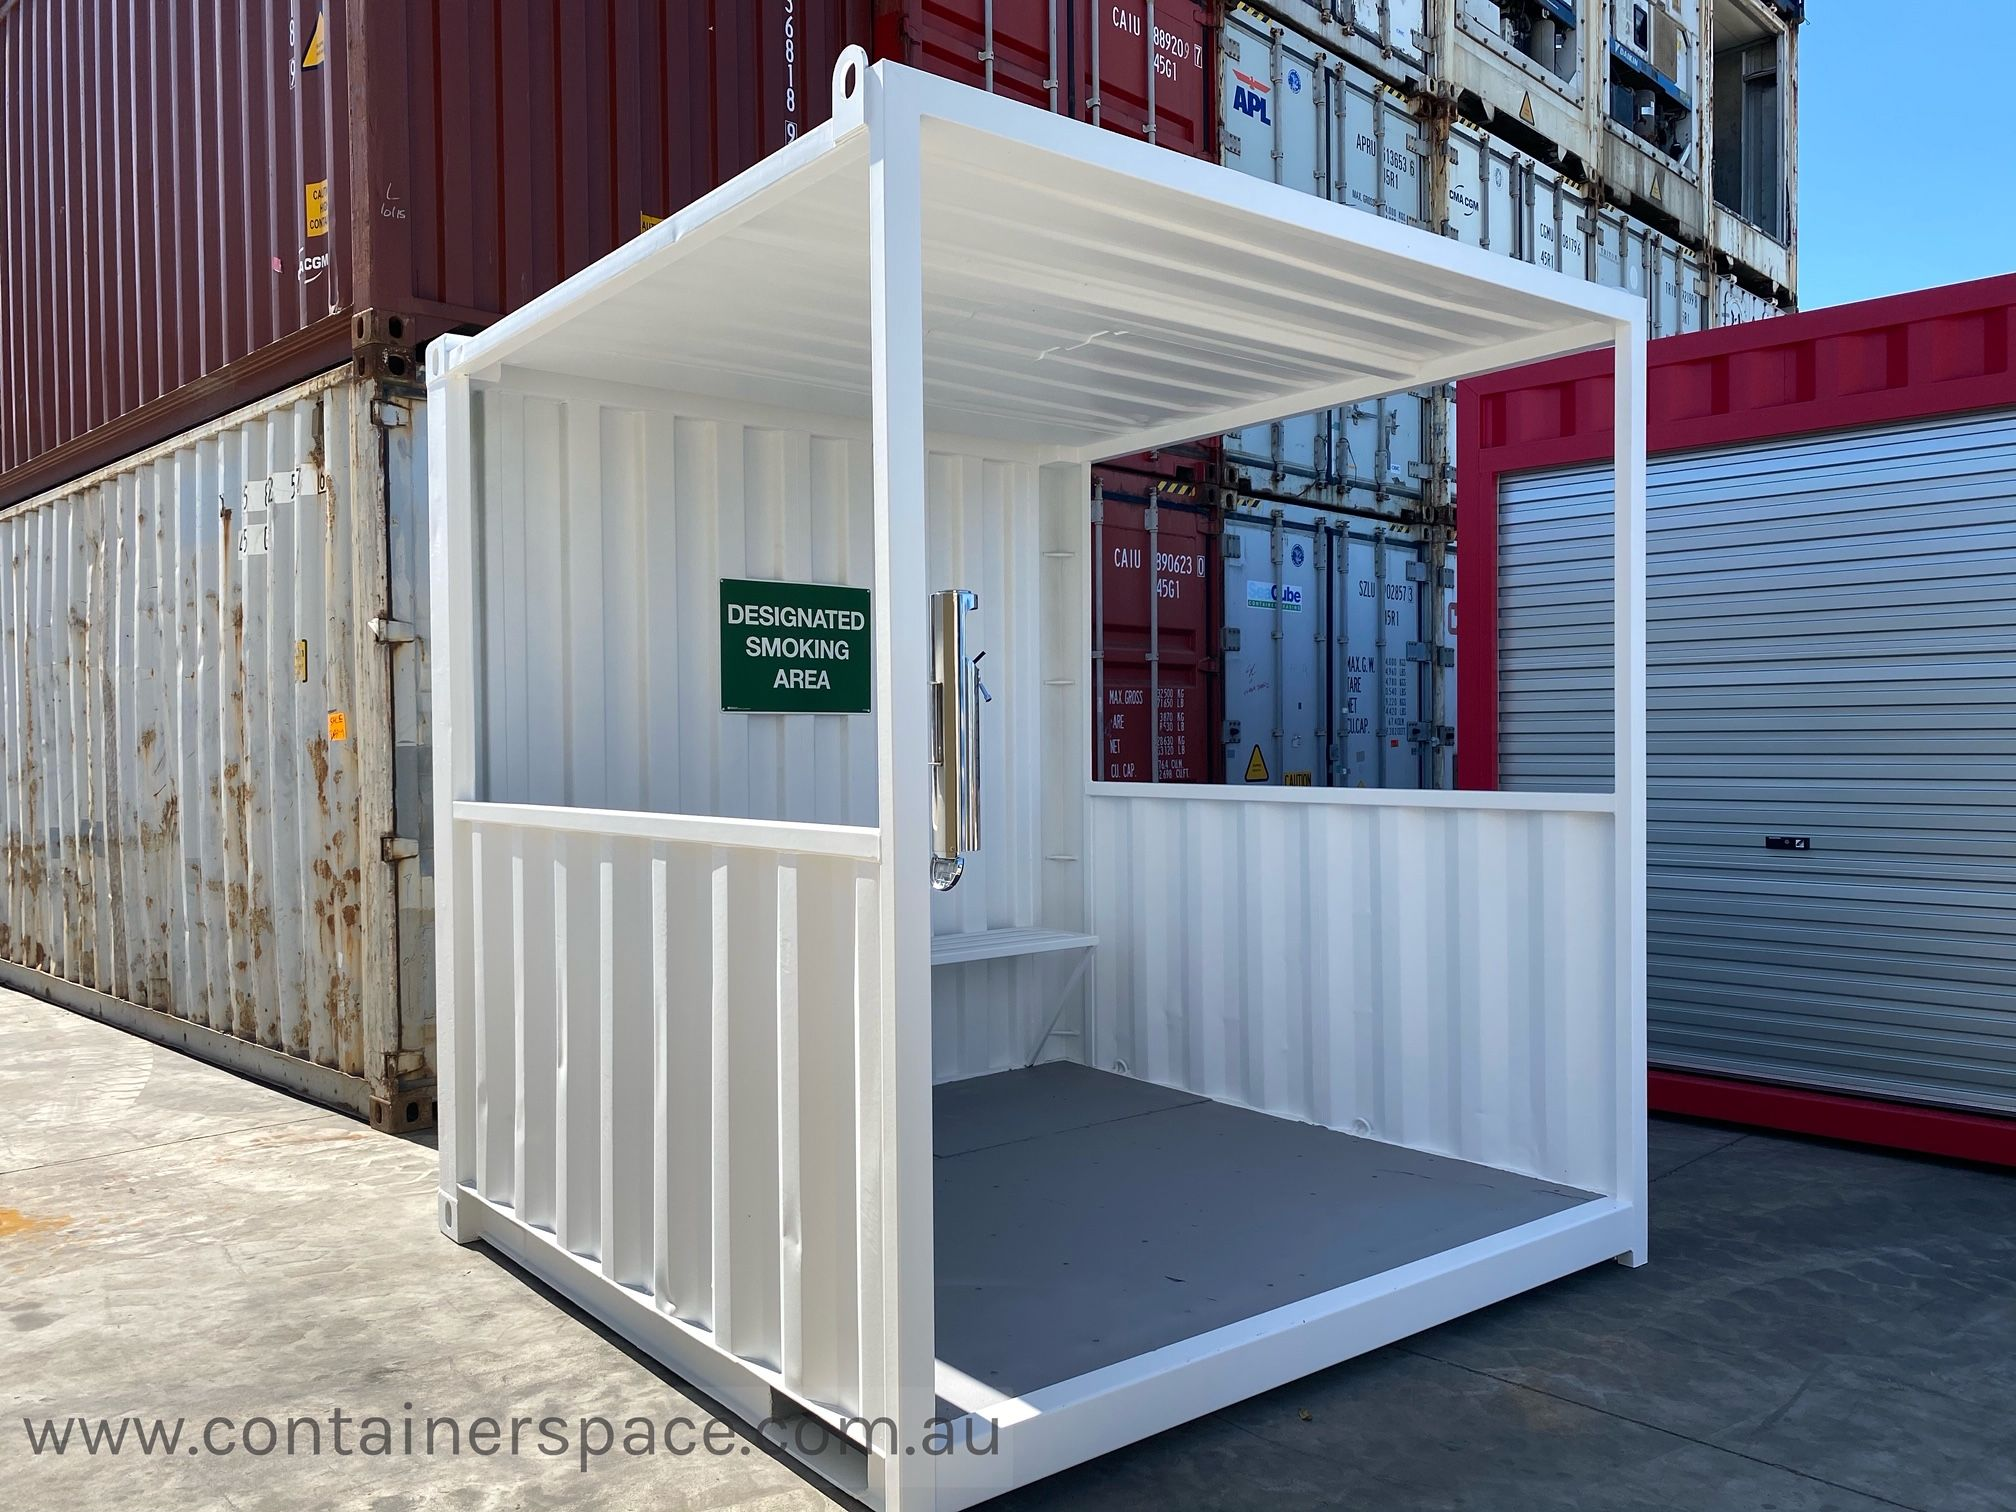 Shipping Containers For Sale In Melbourne Containerspace In 2020 Shipping Containers For Sale Container House Containers For Sale